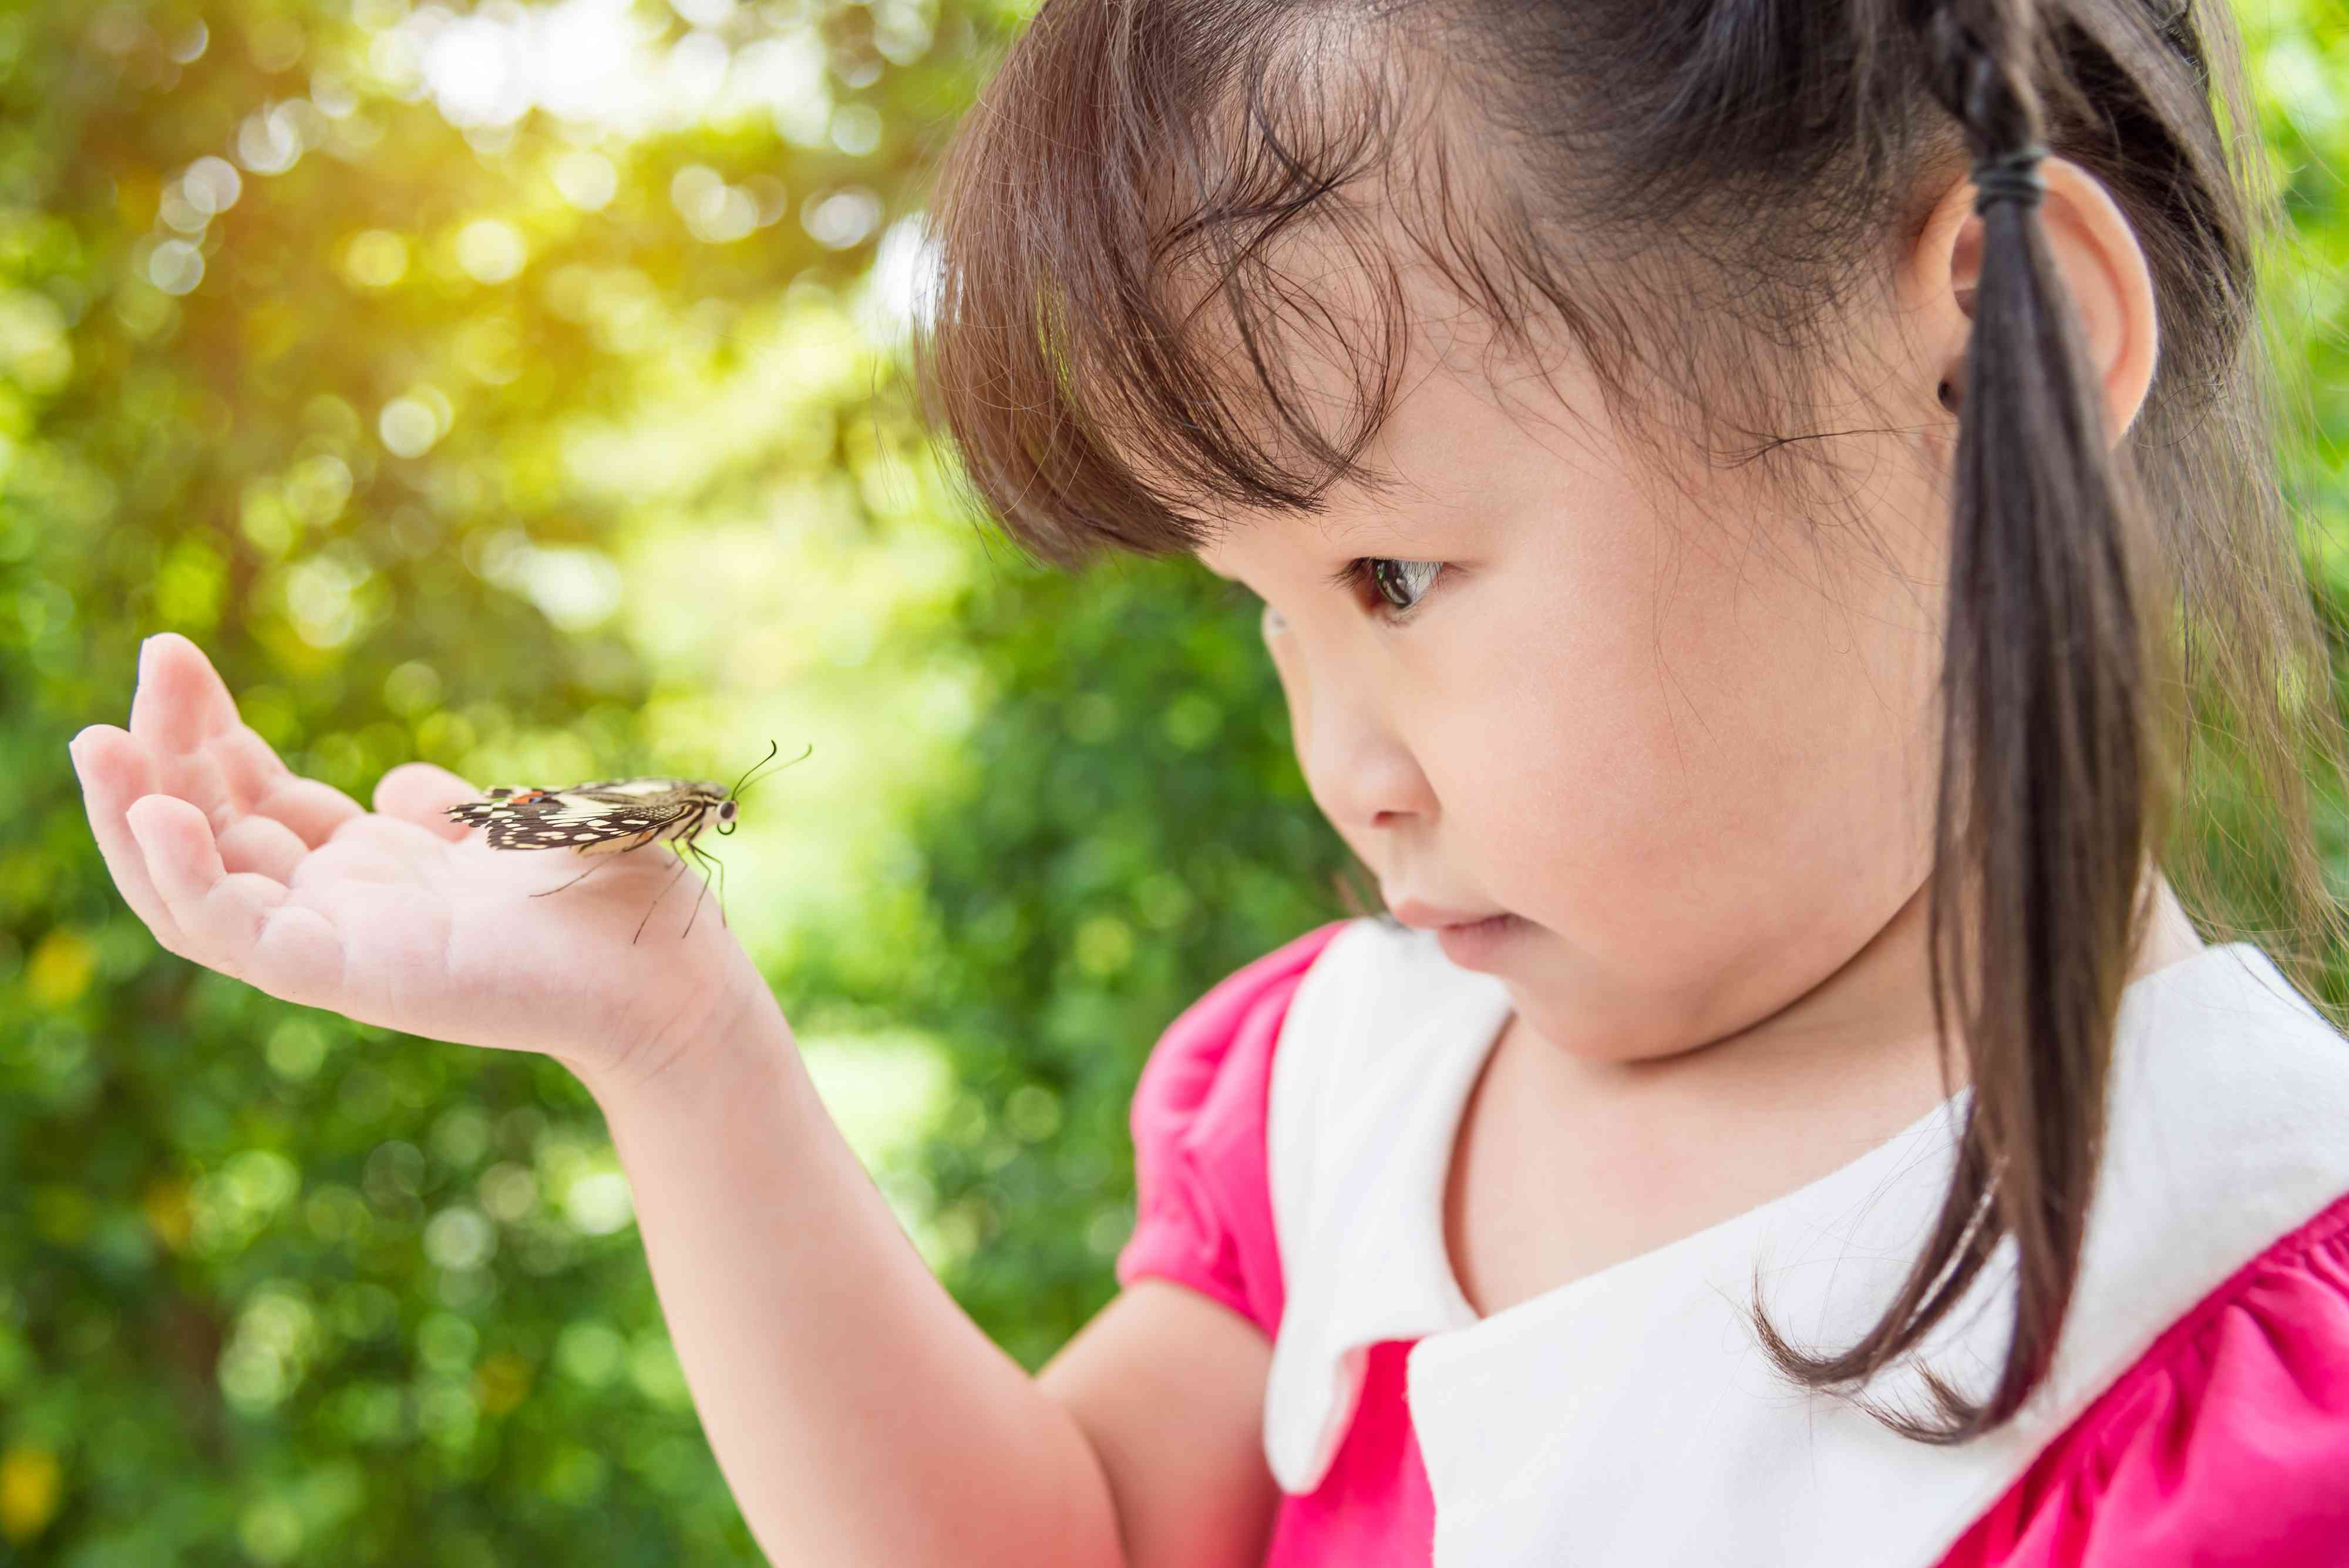 girl looking at butterfly on her hand in park